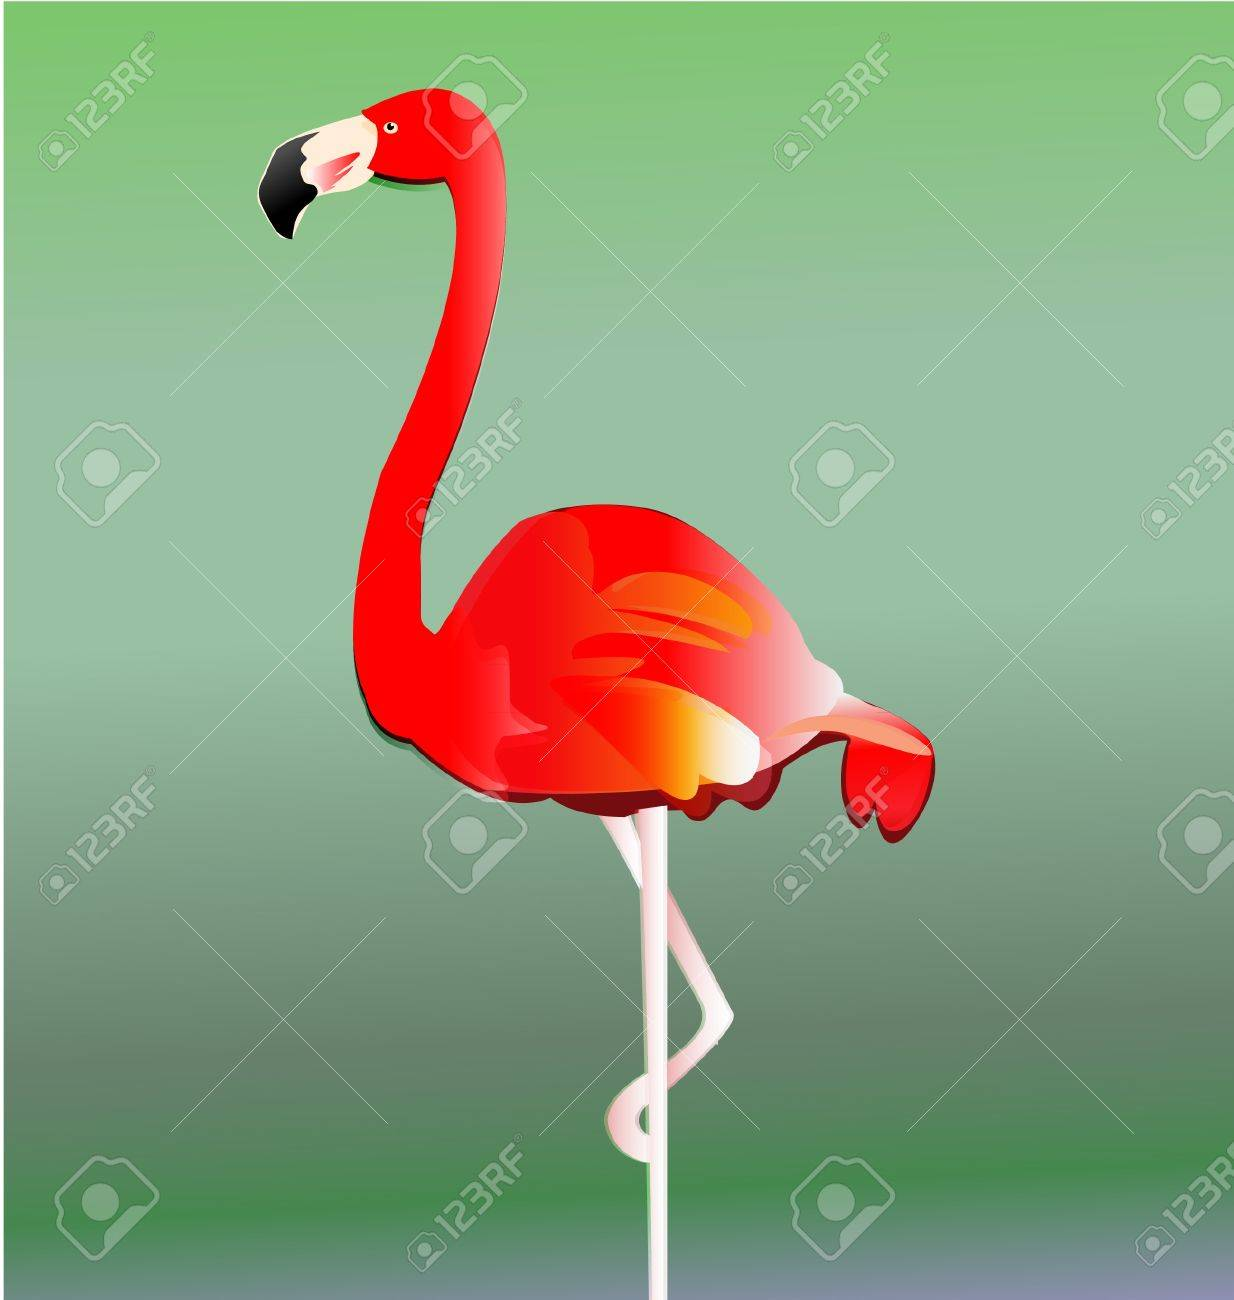 Flamingo bird vector eps10 Stock Vector - 14760792